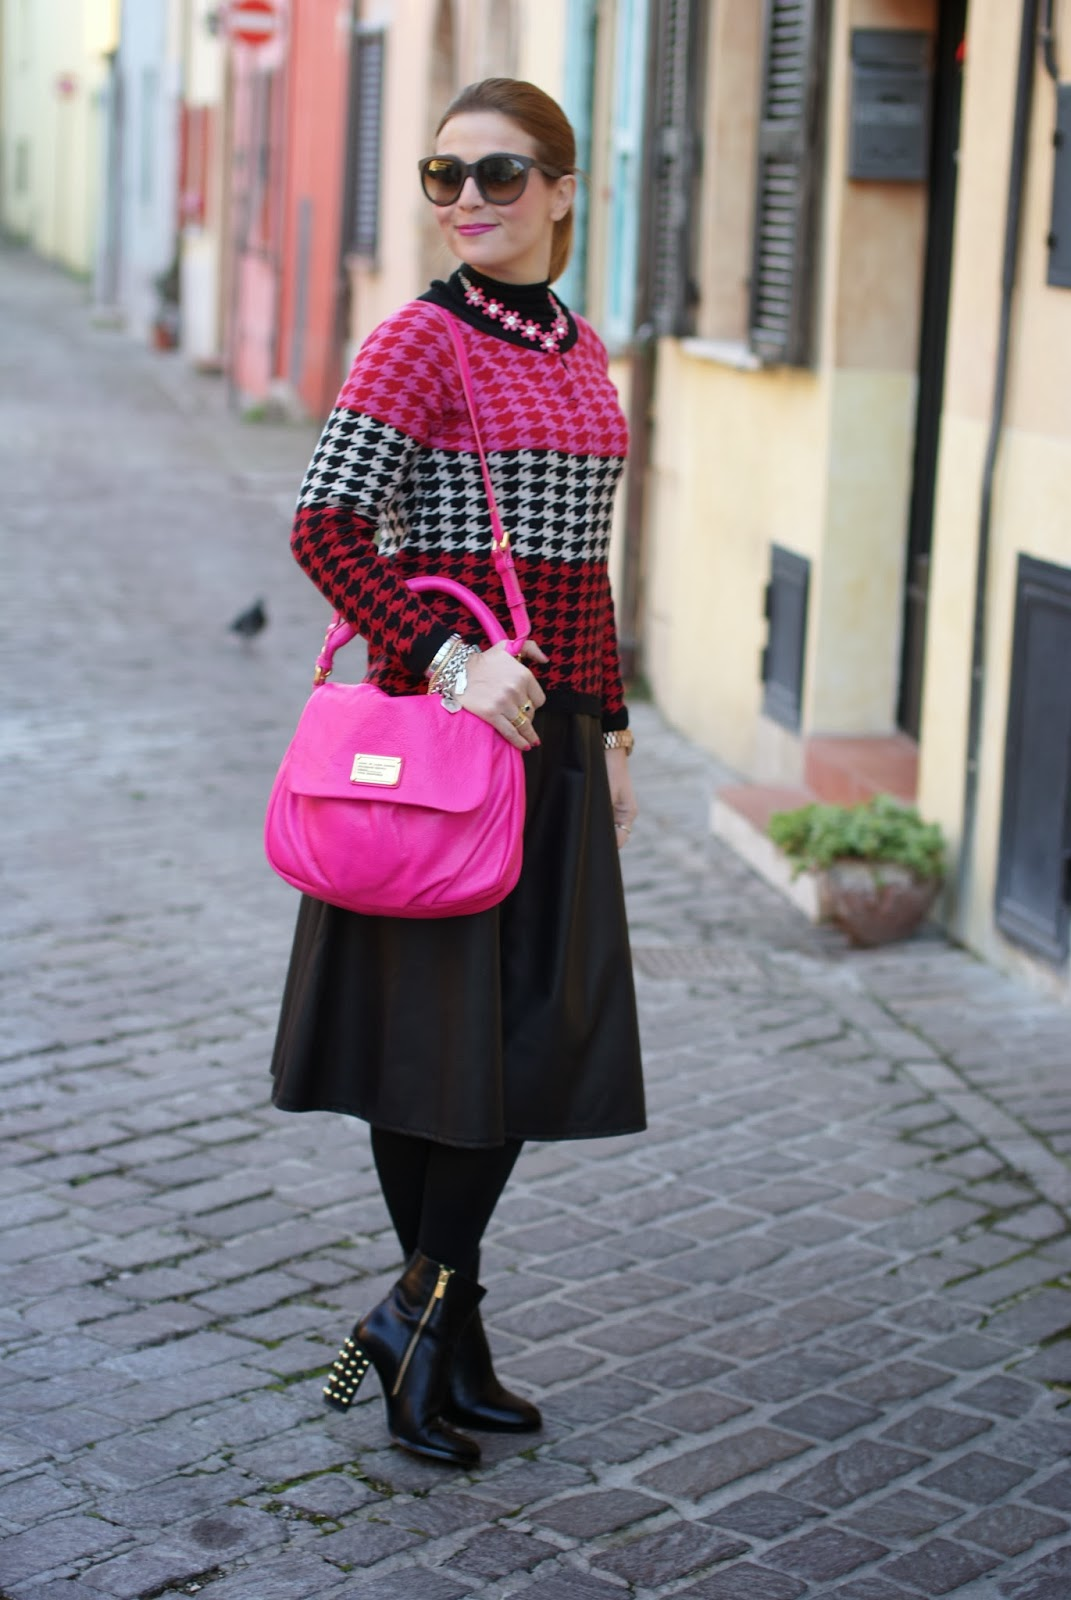 Marc by Marc Jacobs lil ukita pink bag, pied de poule cardigan, michael kors boots, fashion and cookies, fashion blogger